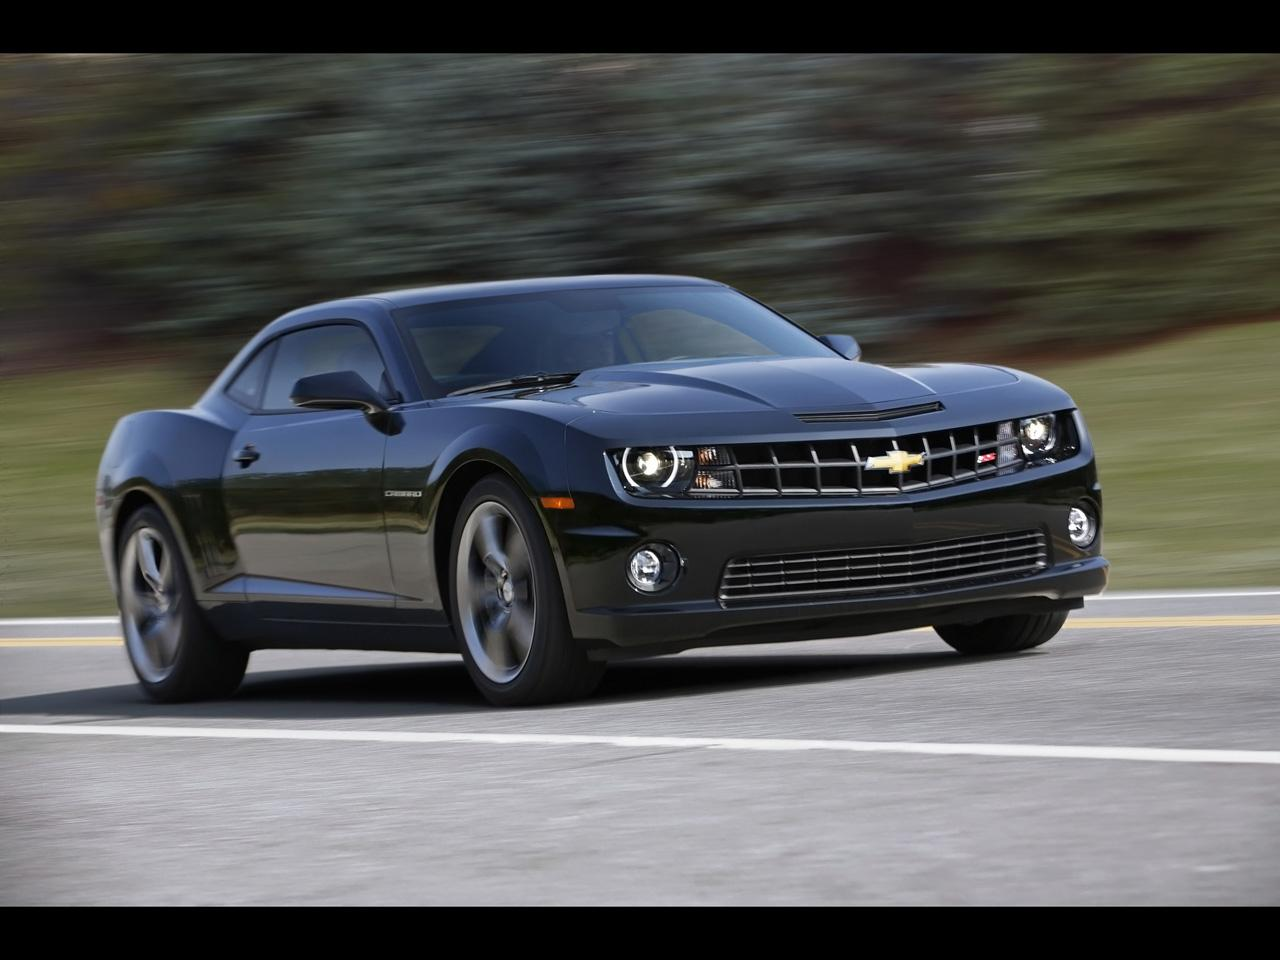 2011 chevrolet camaro wallpapers widescreen desktop backgrounds. Cars Review. Best American Auto & Cars Review